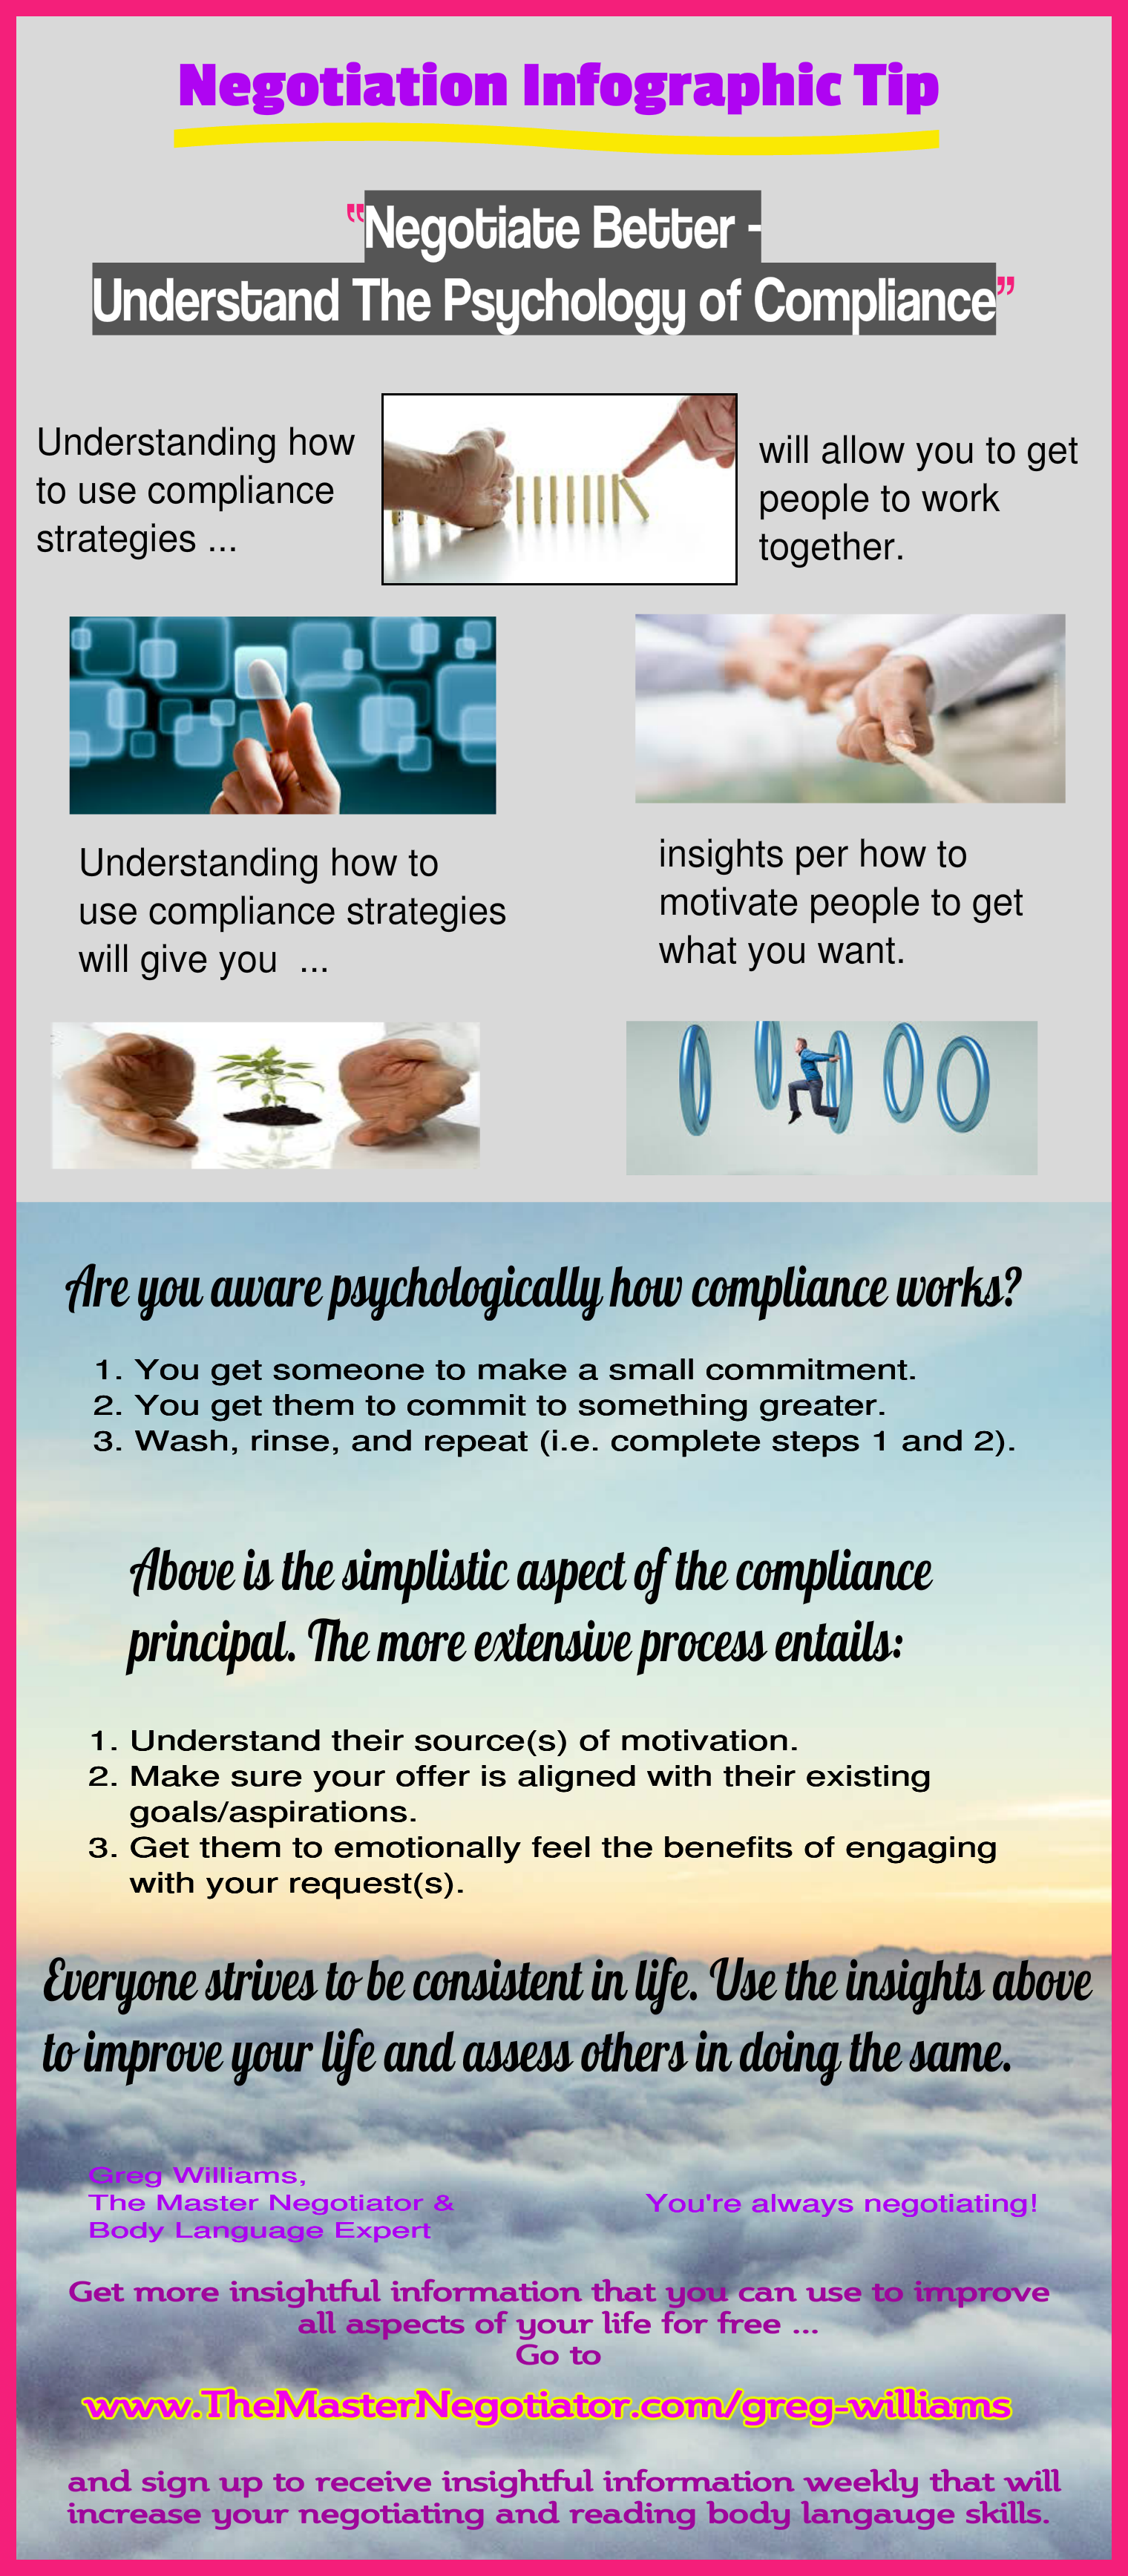 Negotiate Better Understand The Psychology of Compliance 2